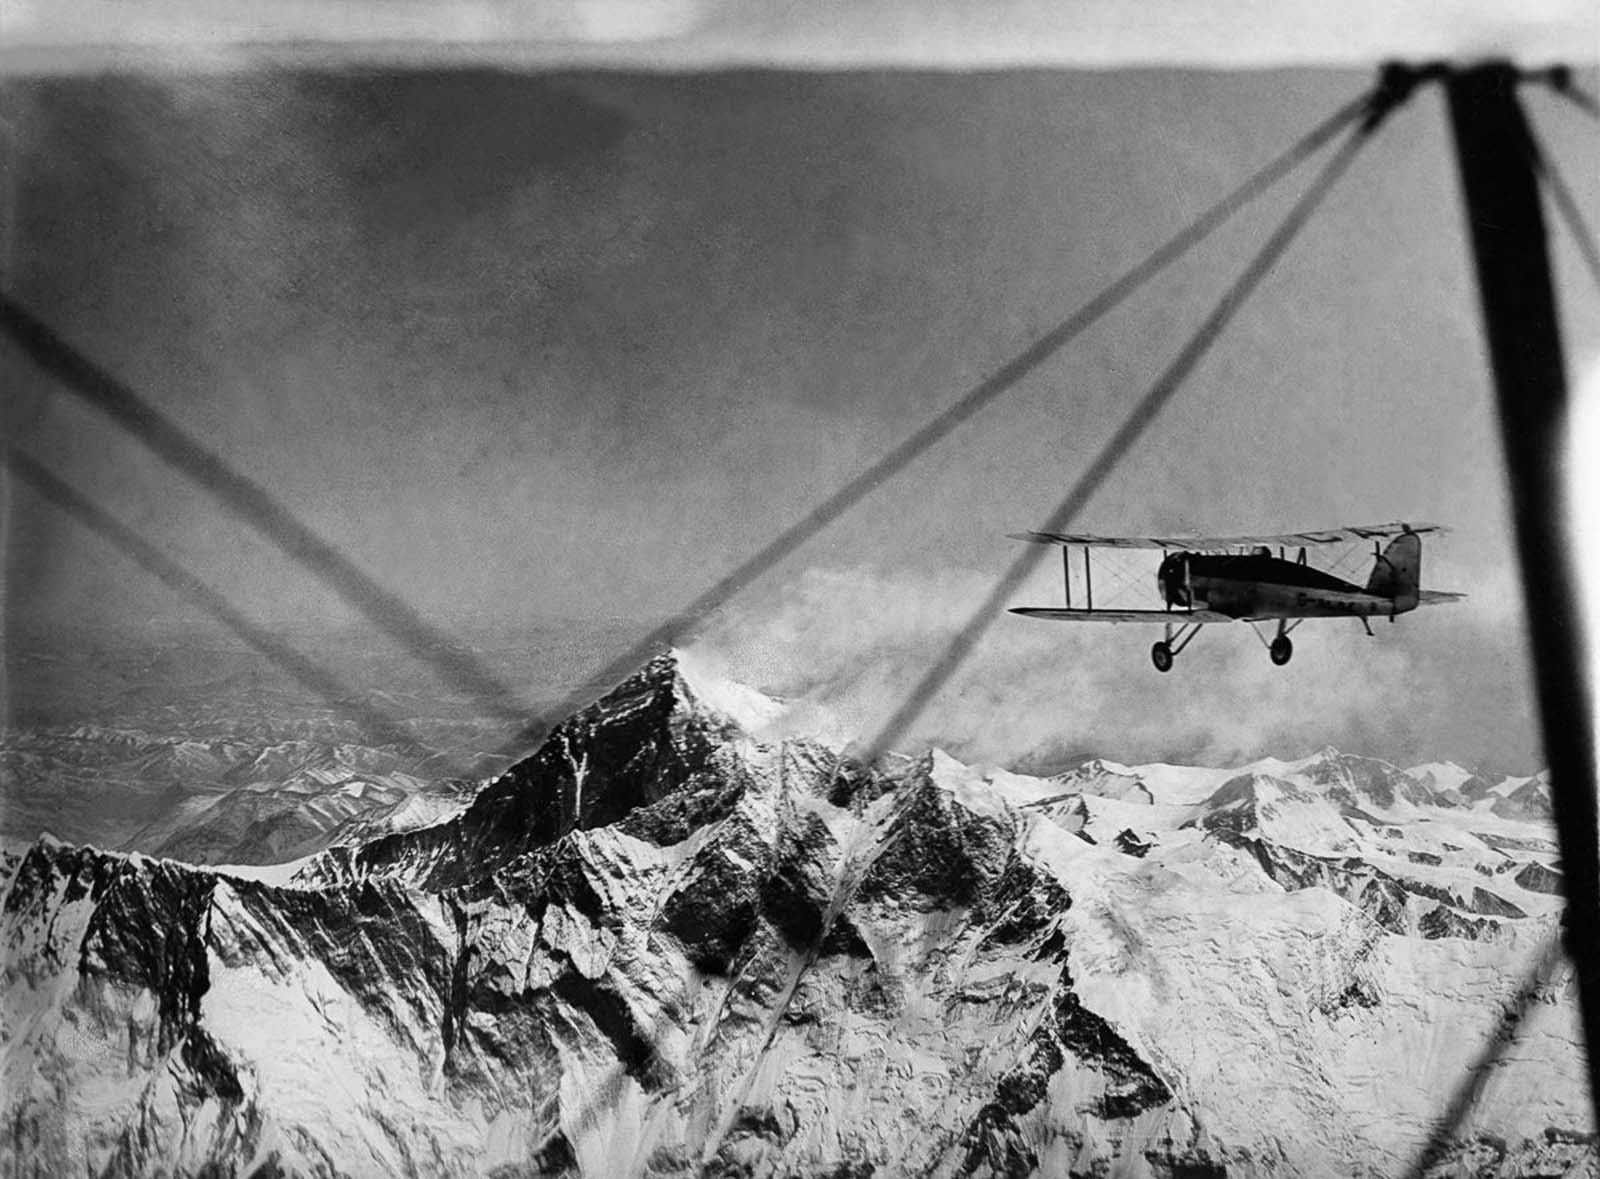 The two planes fly towards Lhotse and Everest at 32,000 feet. 1933.